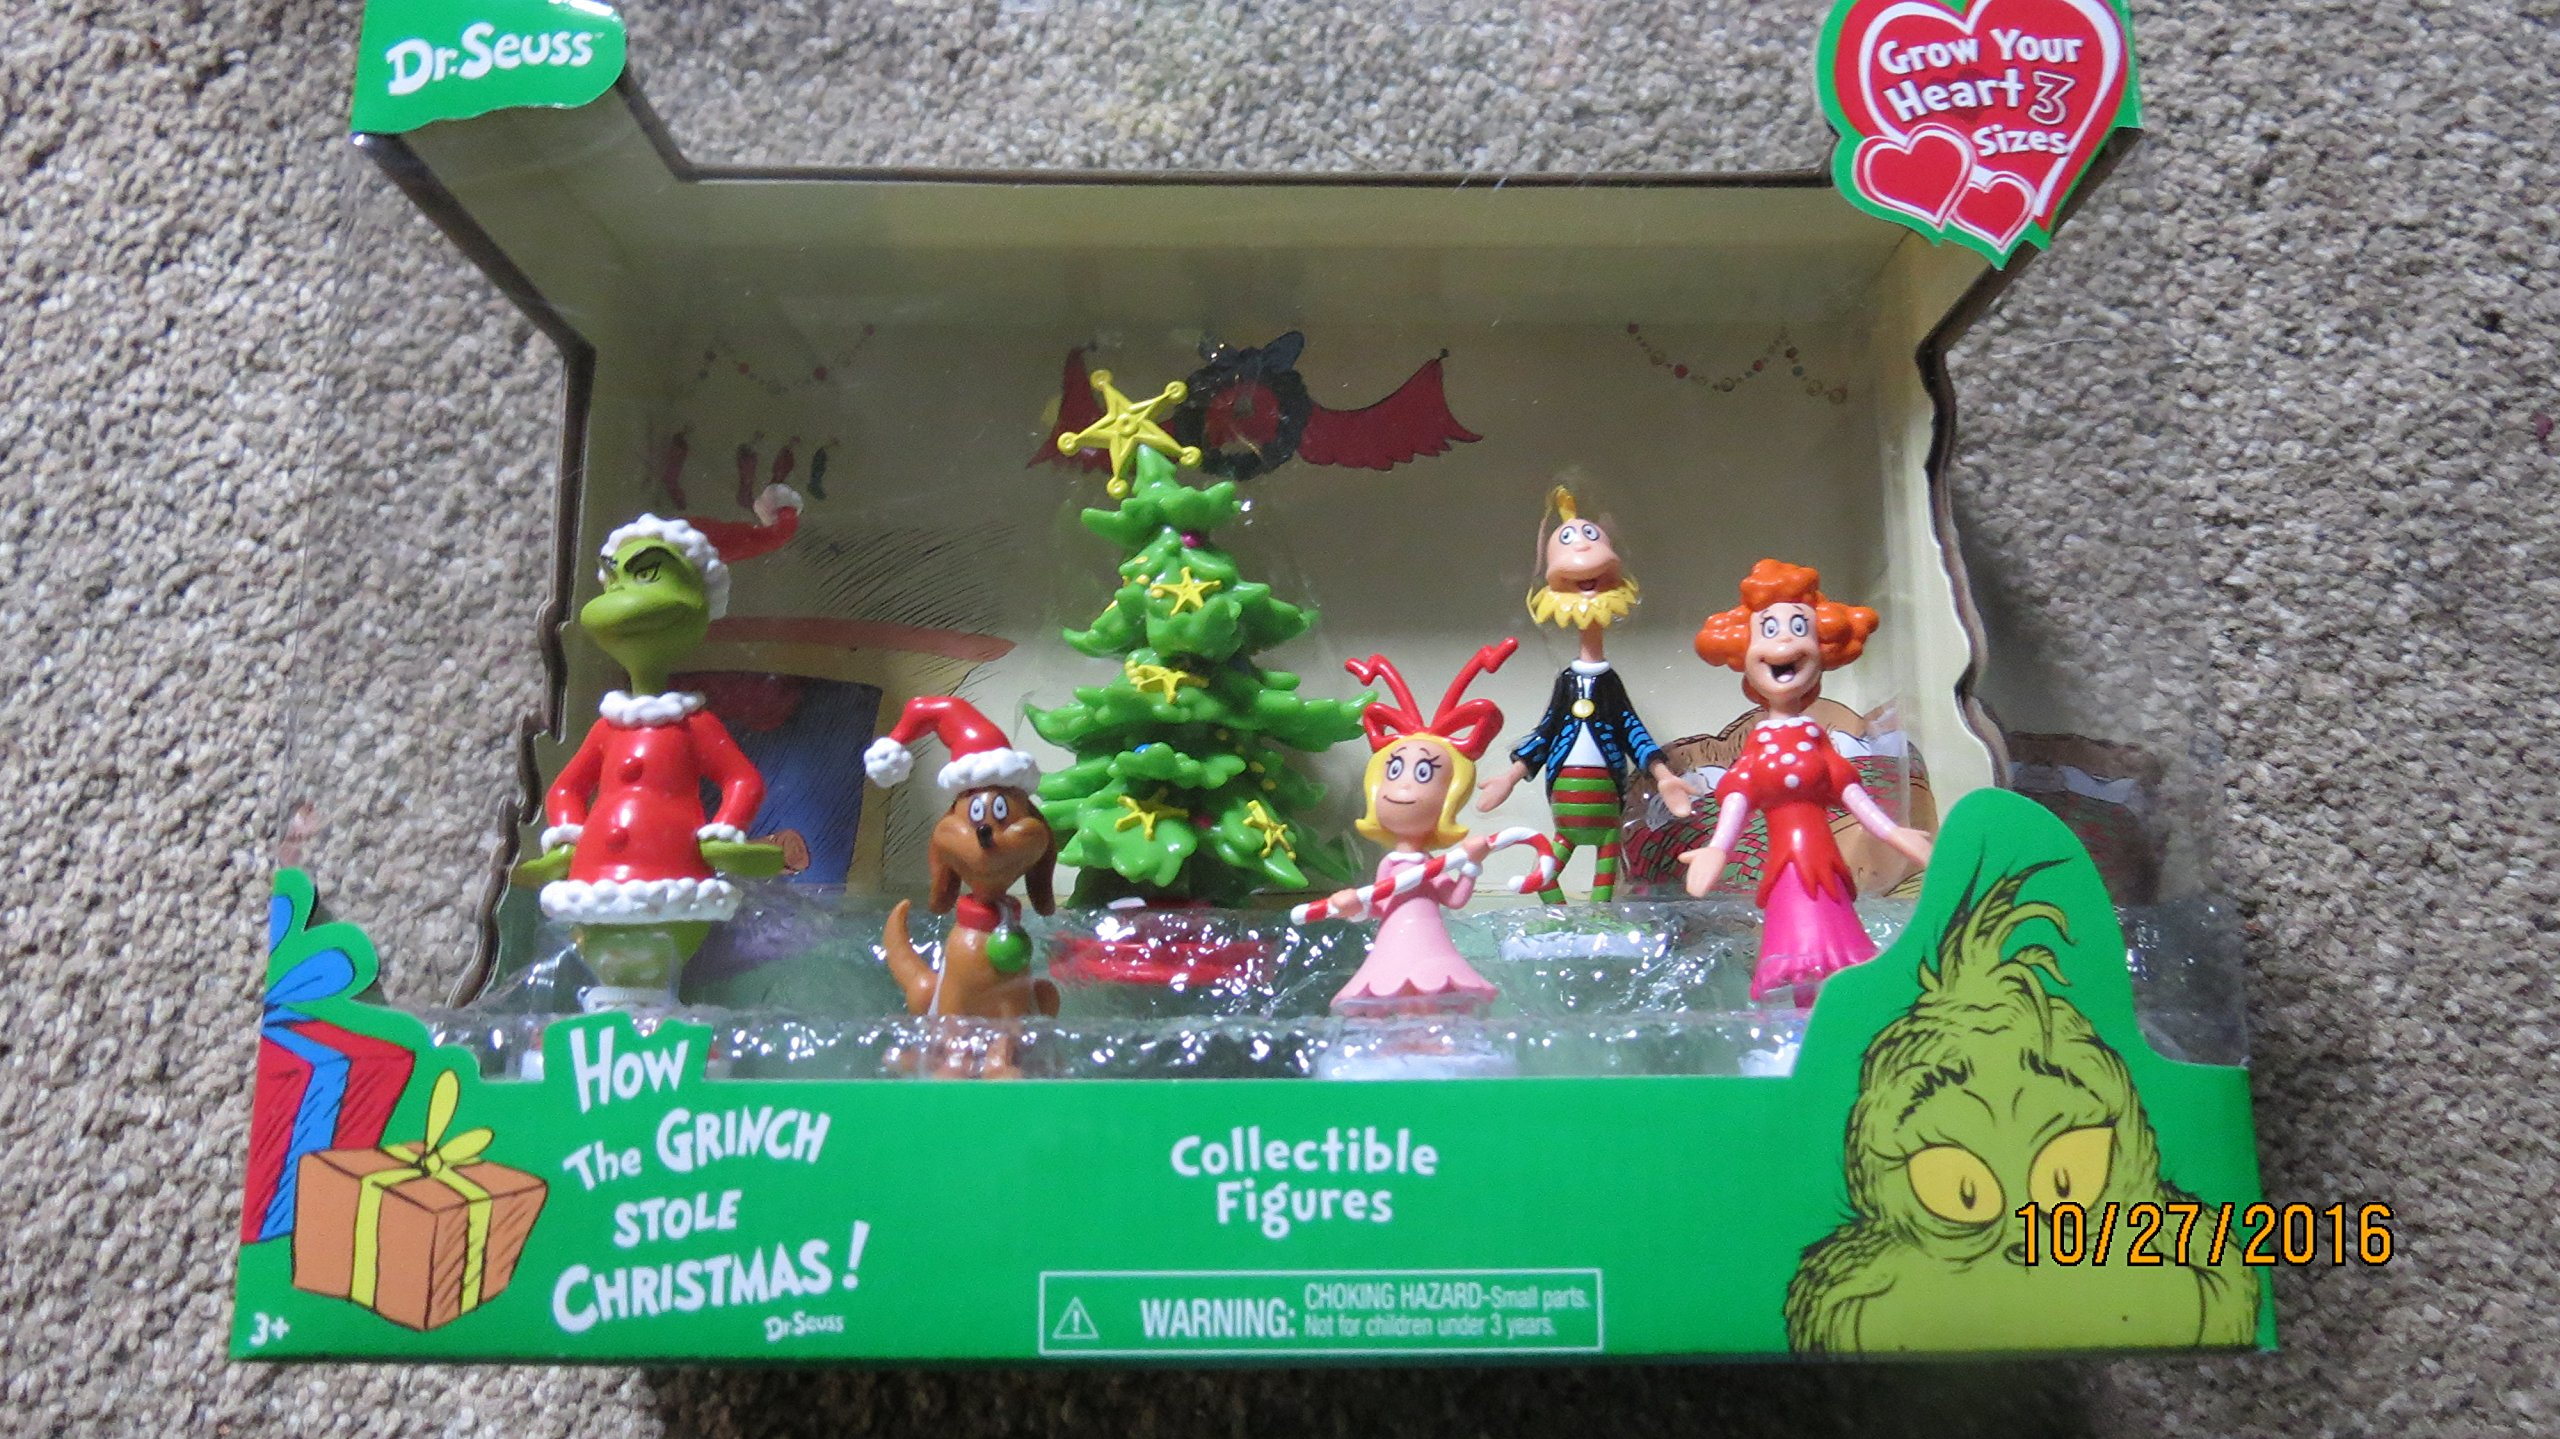 Dr Seuss HOW THE GRINCH STOLE CHRISTMAS Collectible Figures